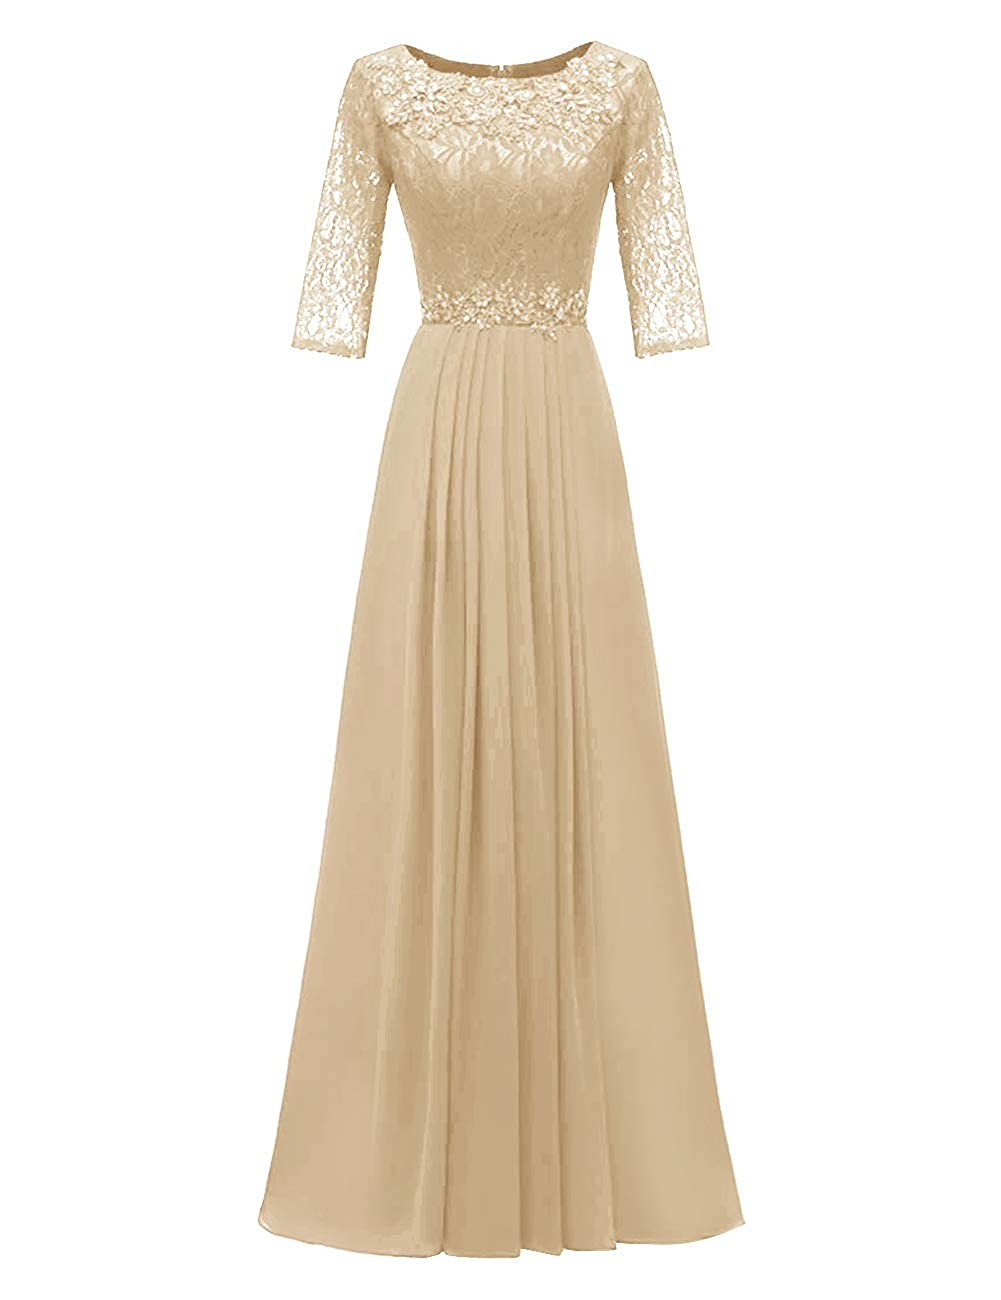 Champagne H.S.D Evening Dresses Long Prom Dresses Lace Bridesmaid Dresses Evening Formal Gowns